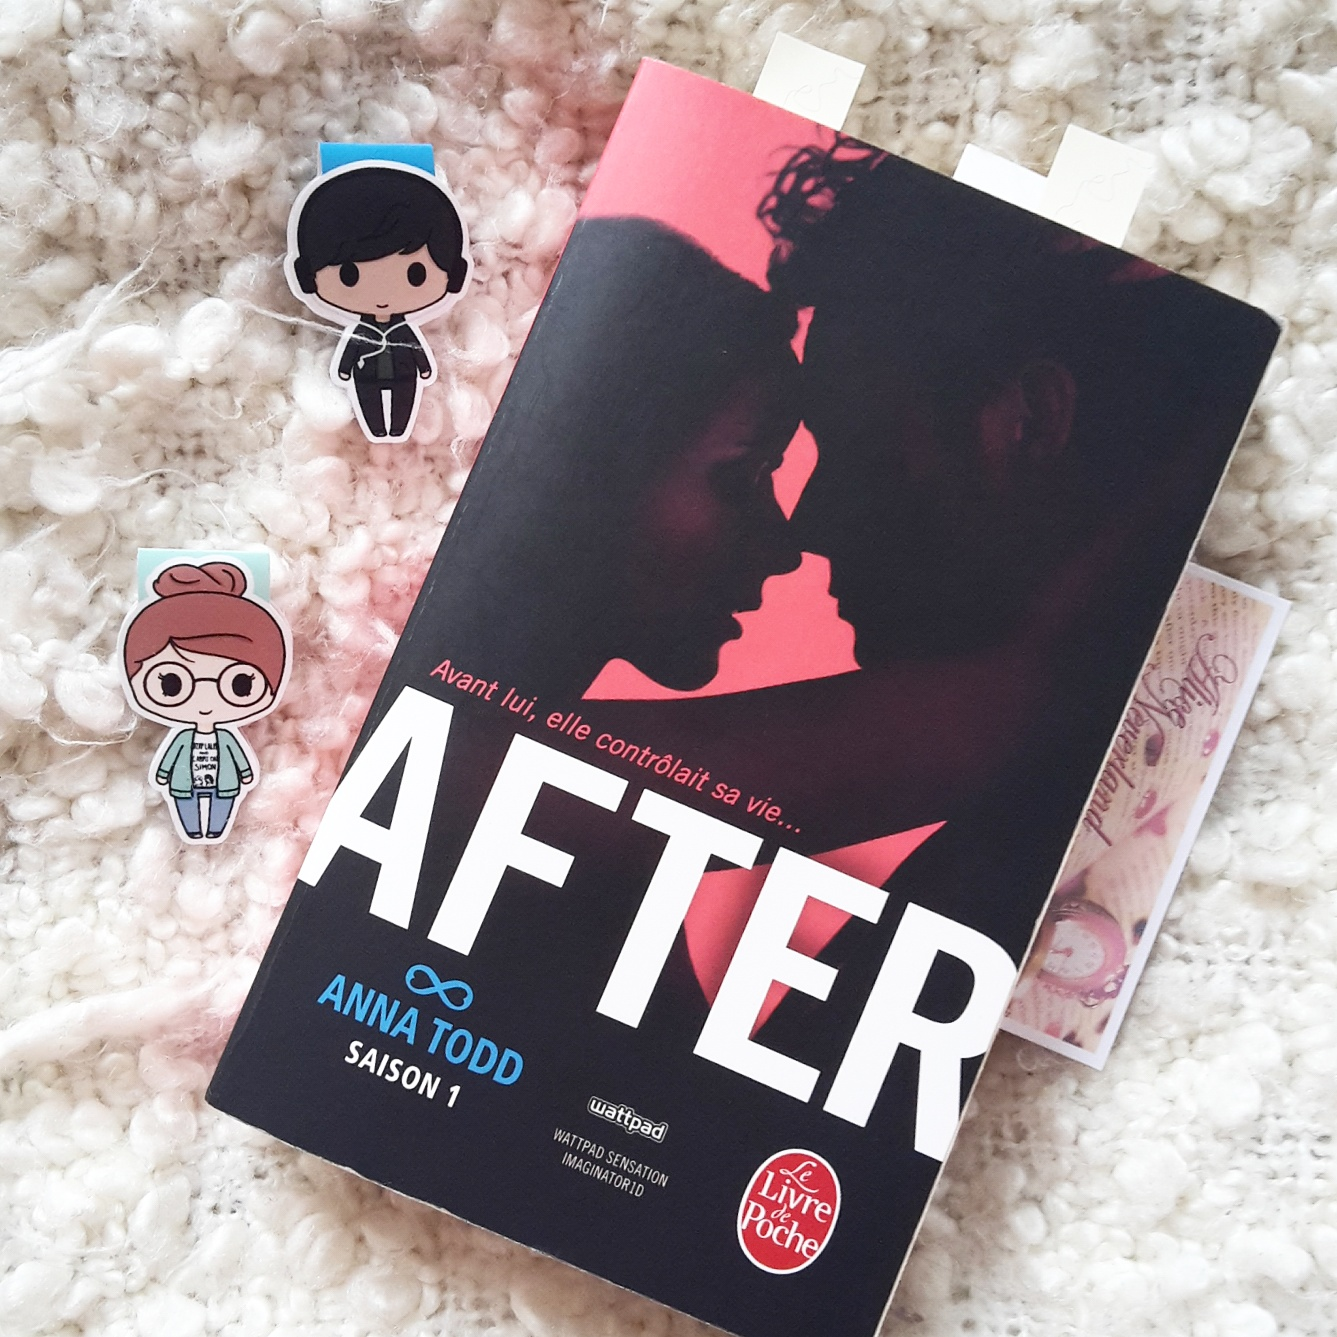 After Saison 1 La Rencontre Anna Todd I Believe In